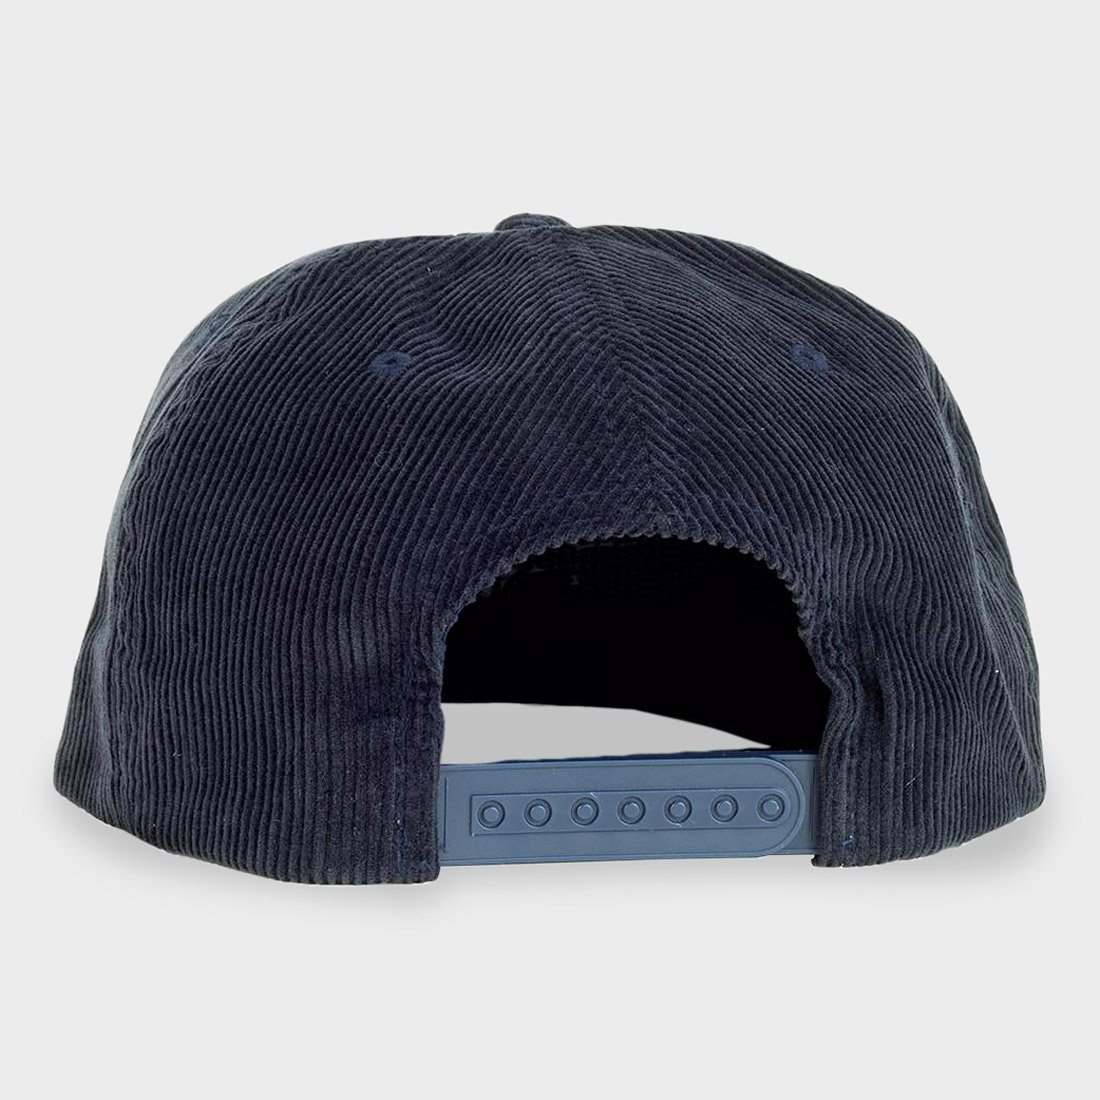 separation shoes 23265 8349c ... product  See See Moto Classic Corduroy Snapback Hat Navy